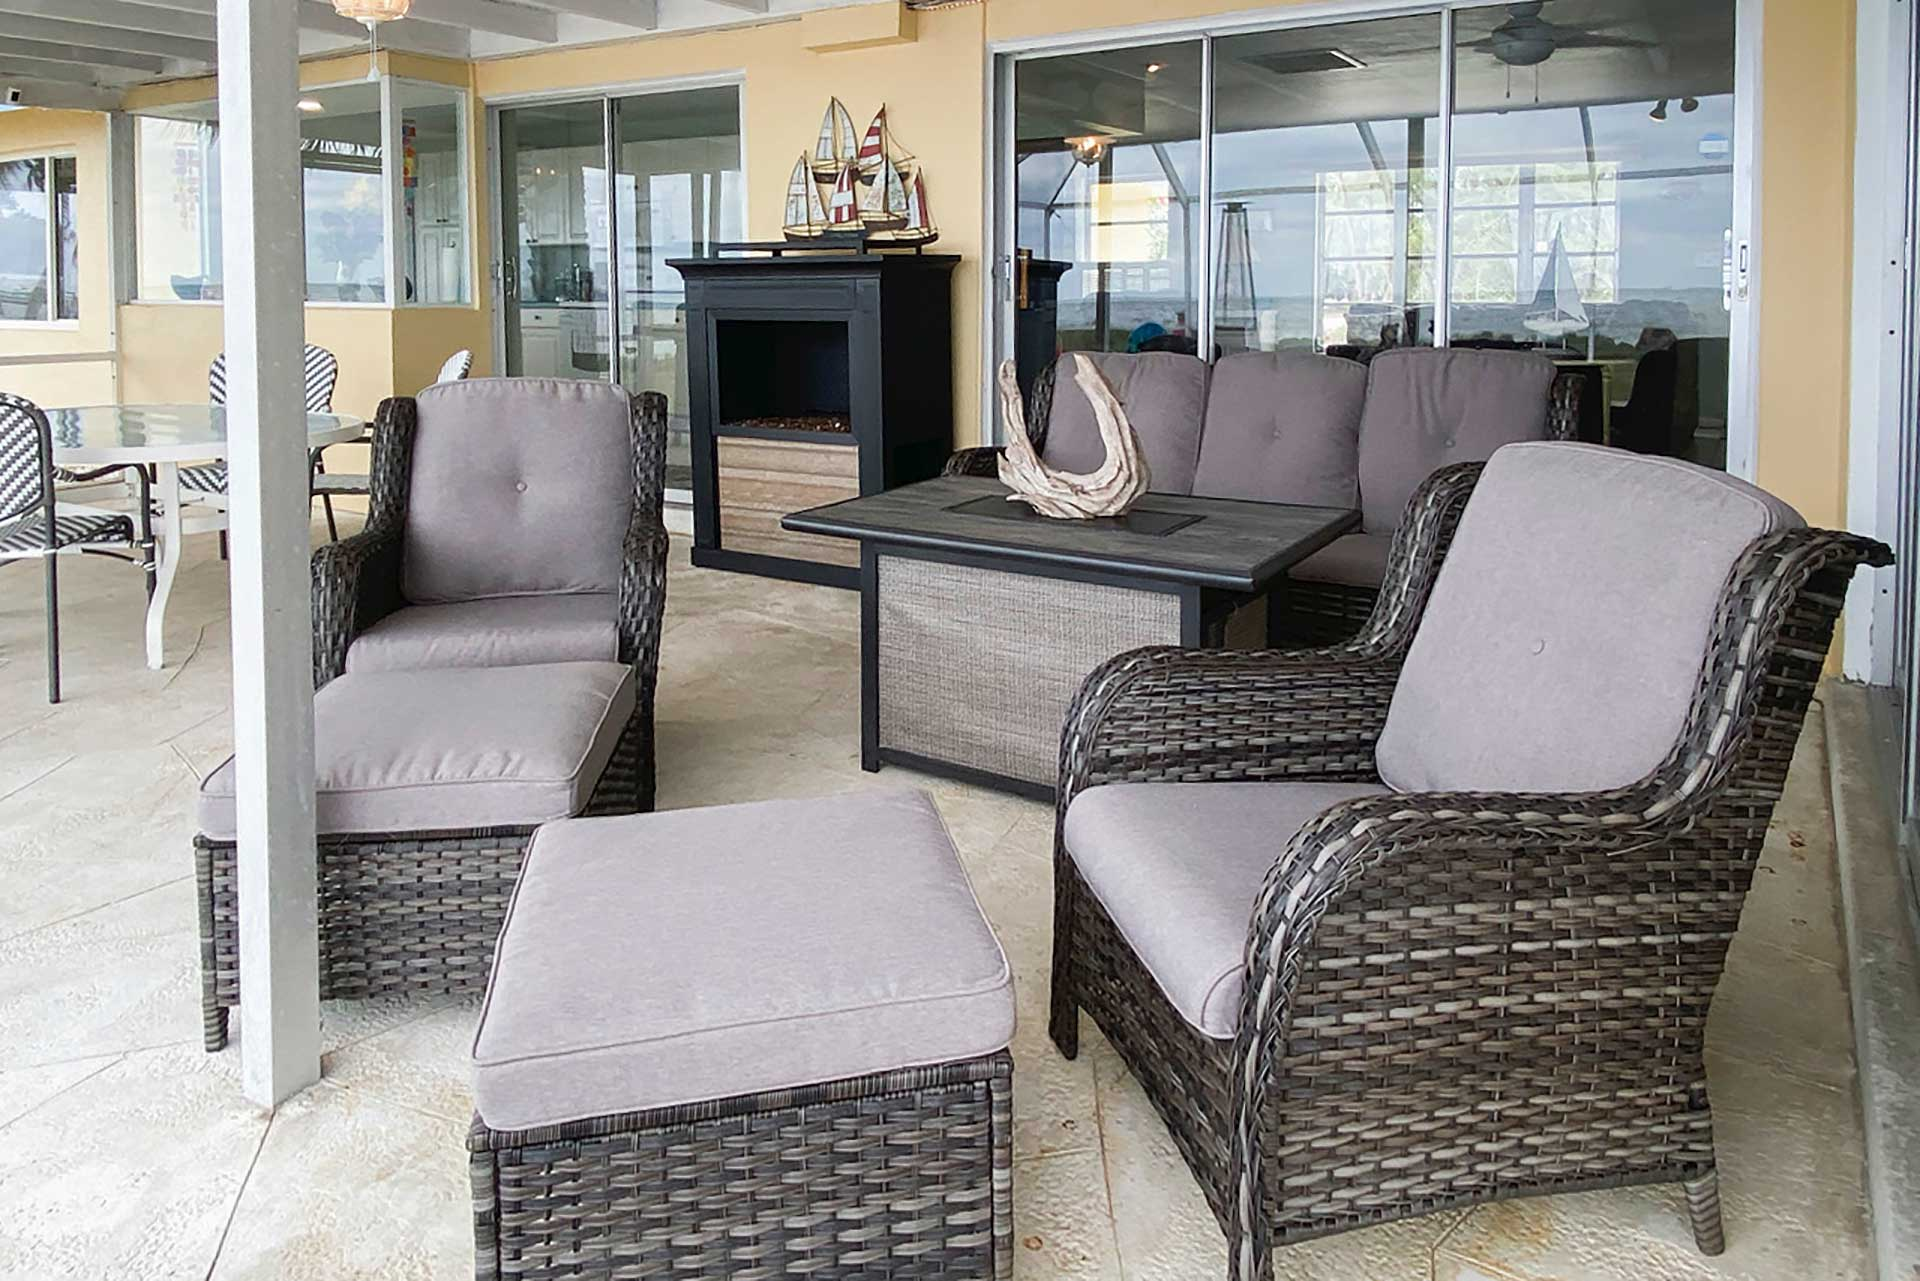 Covered Outdoor Seating